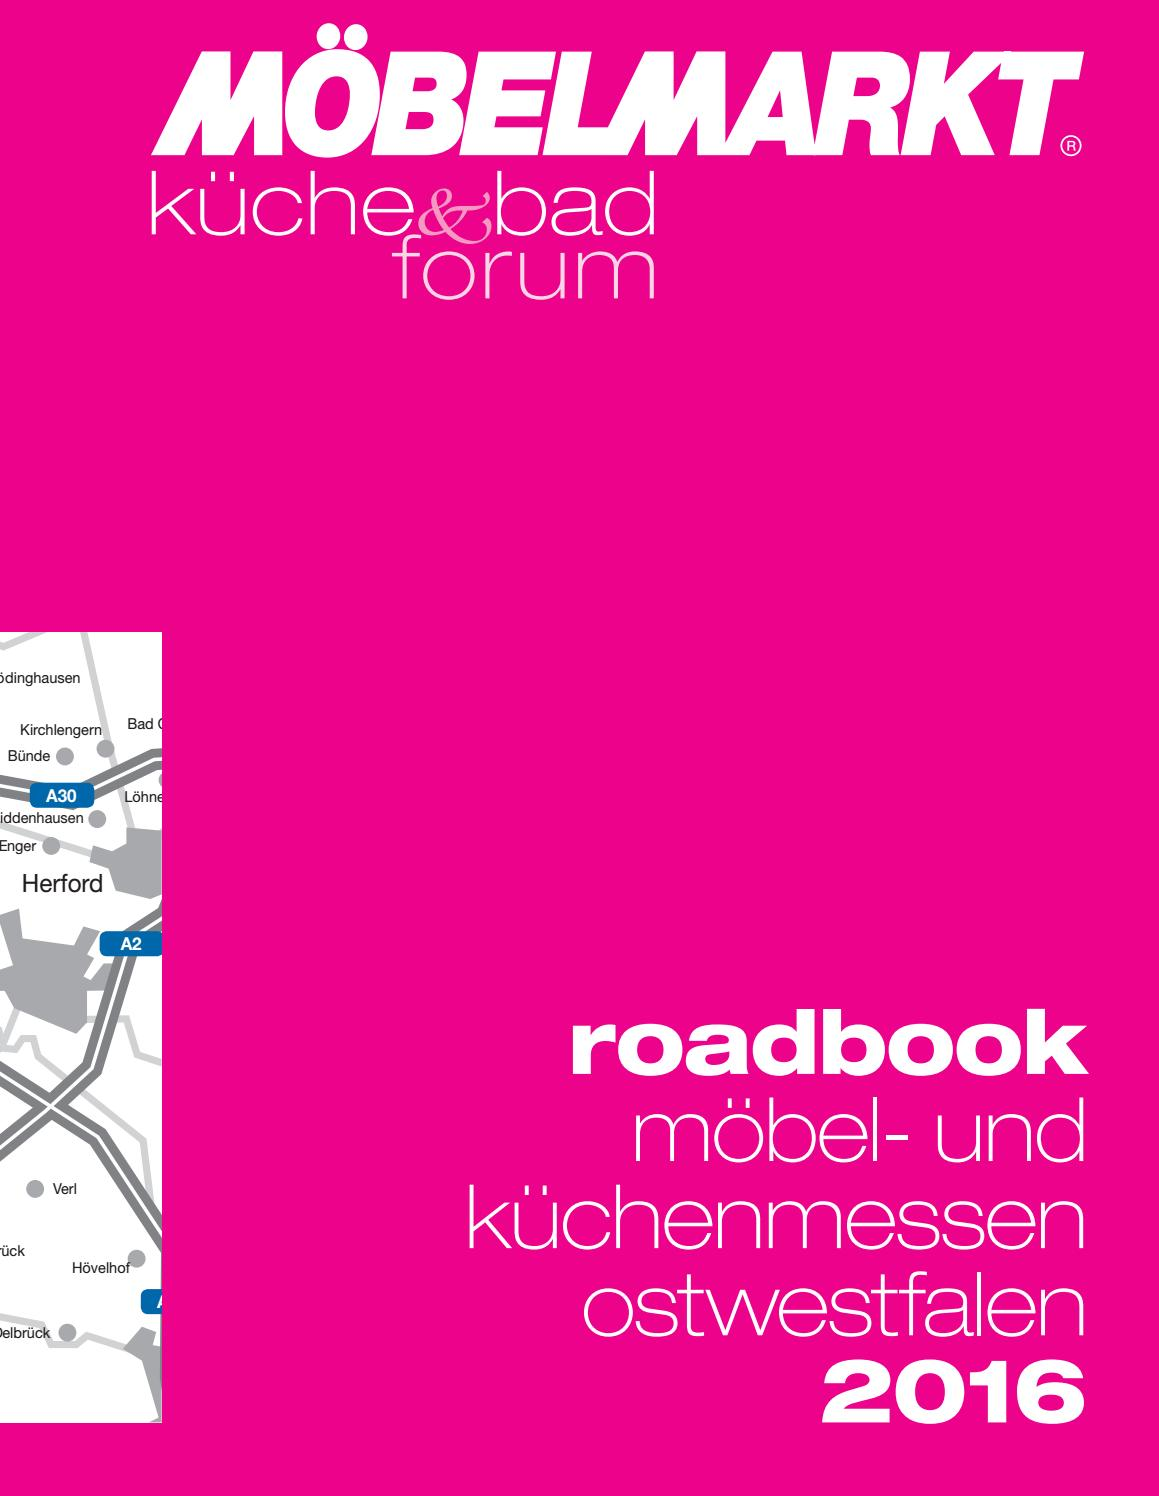 Moebelmarkt 09 2016 Roadbook Lowres By Rsm Kommunikations Marketing Gmbh Issuu